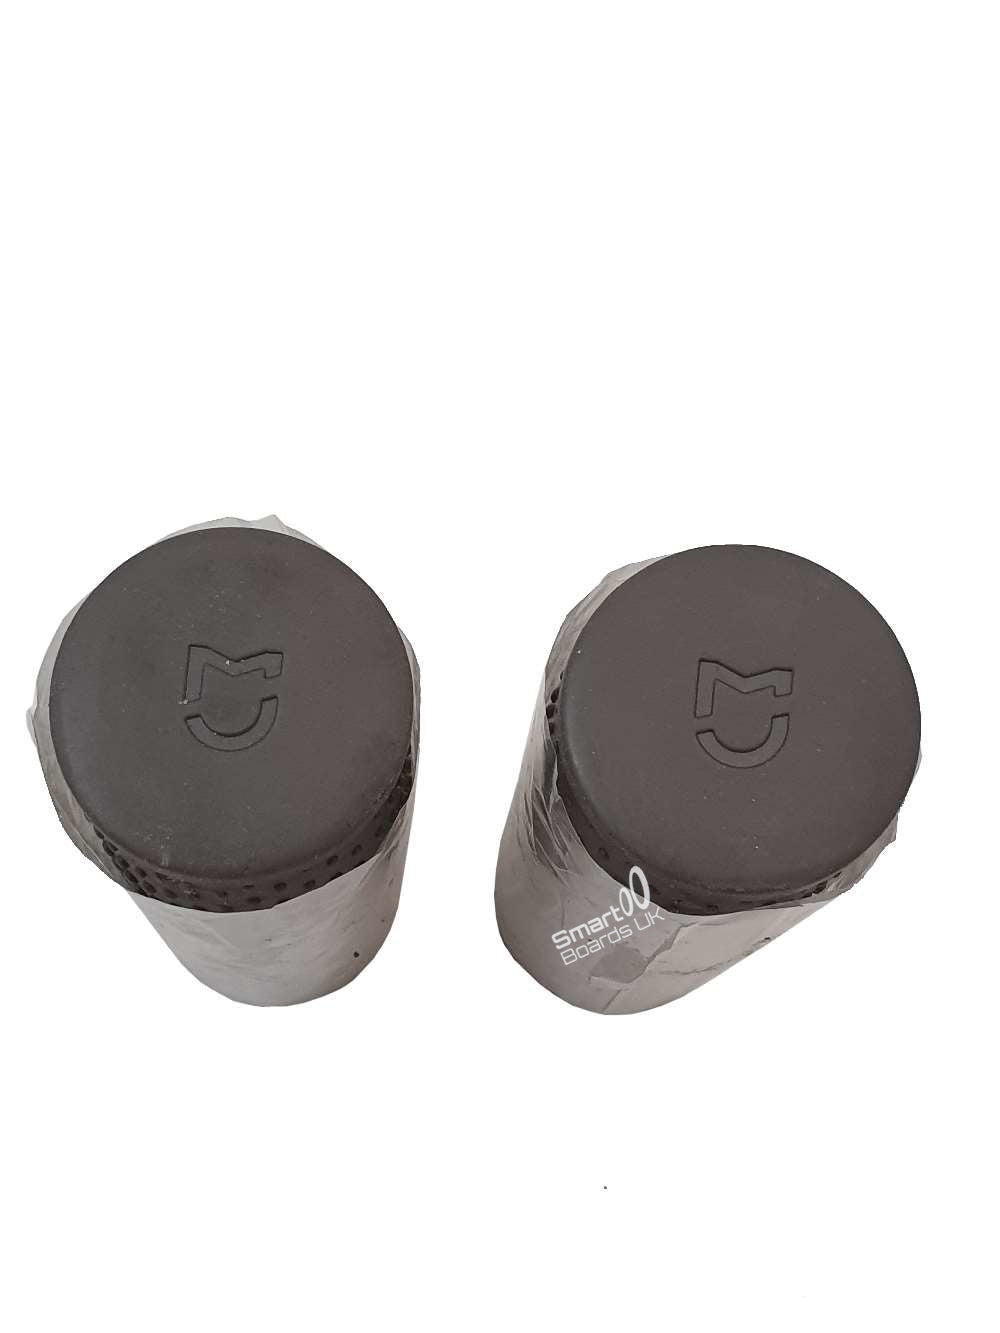 Genuine Xiaomi Mijia M365 Part - STD - Handle Bar Rubber Grips (Pair)